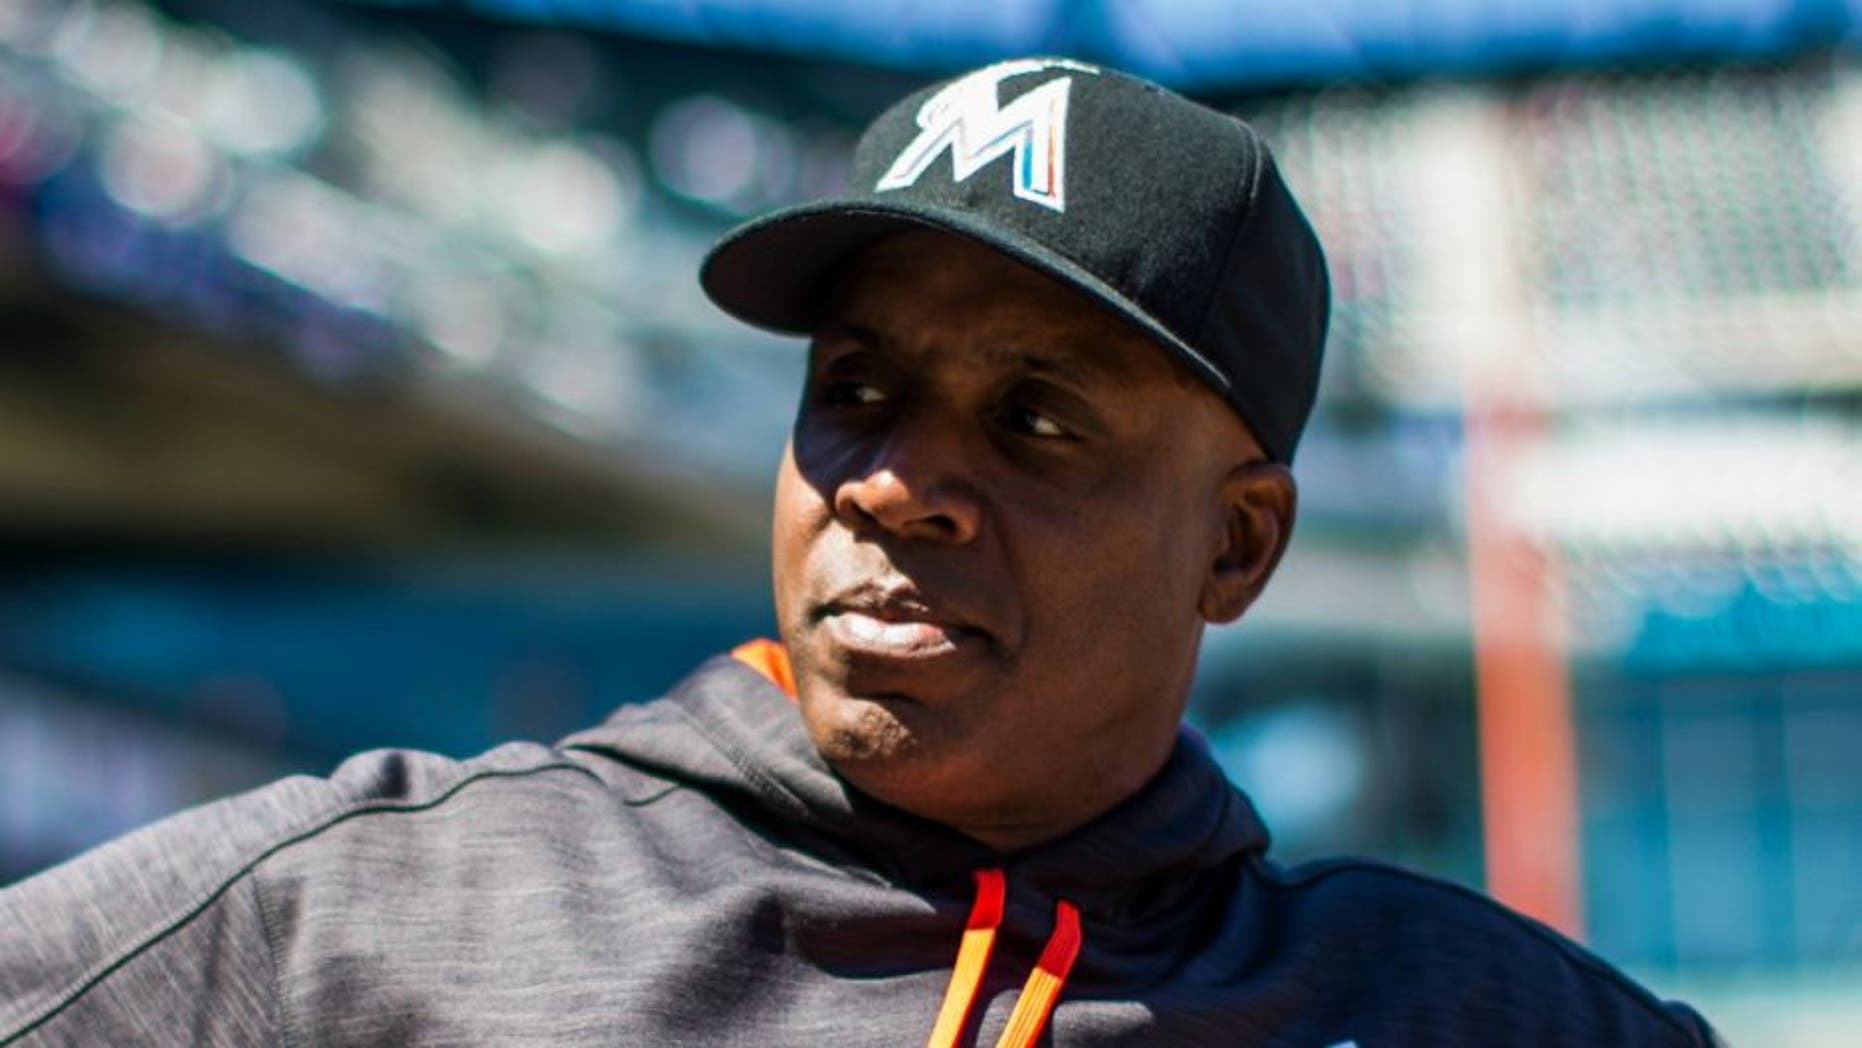 NEW YORK - APRIL 13: Miami Marlins hitting coach Barry Bonds looks on during the game agains the New York Mets at Citi Field on April 13, 2016 in the Queens borough of New York City. (Photo by Rob Tringali/SportsChrome/Getty Images)